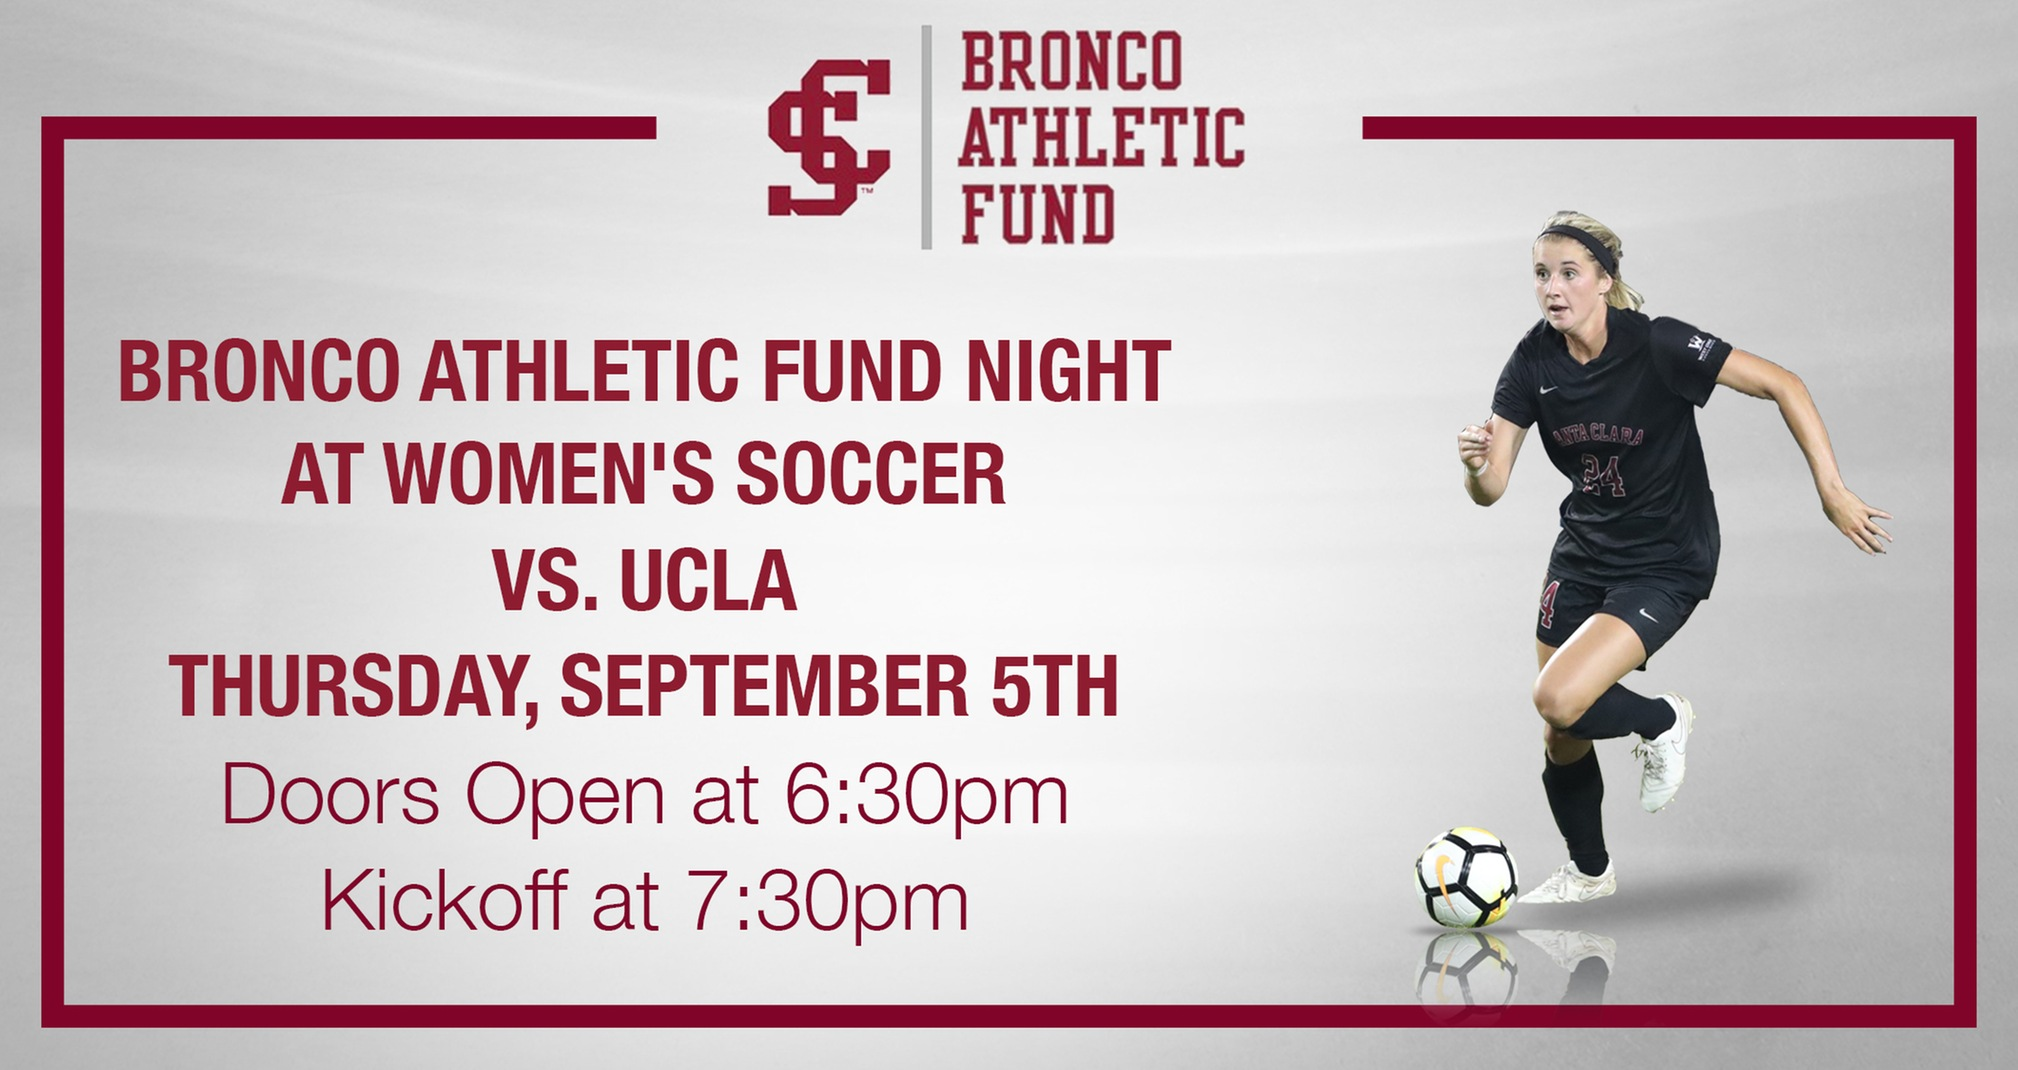 Registration Open for Bronco Athletic Fund Night at Women's Soccer